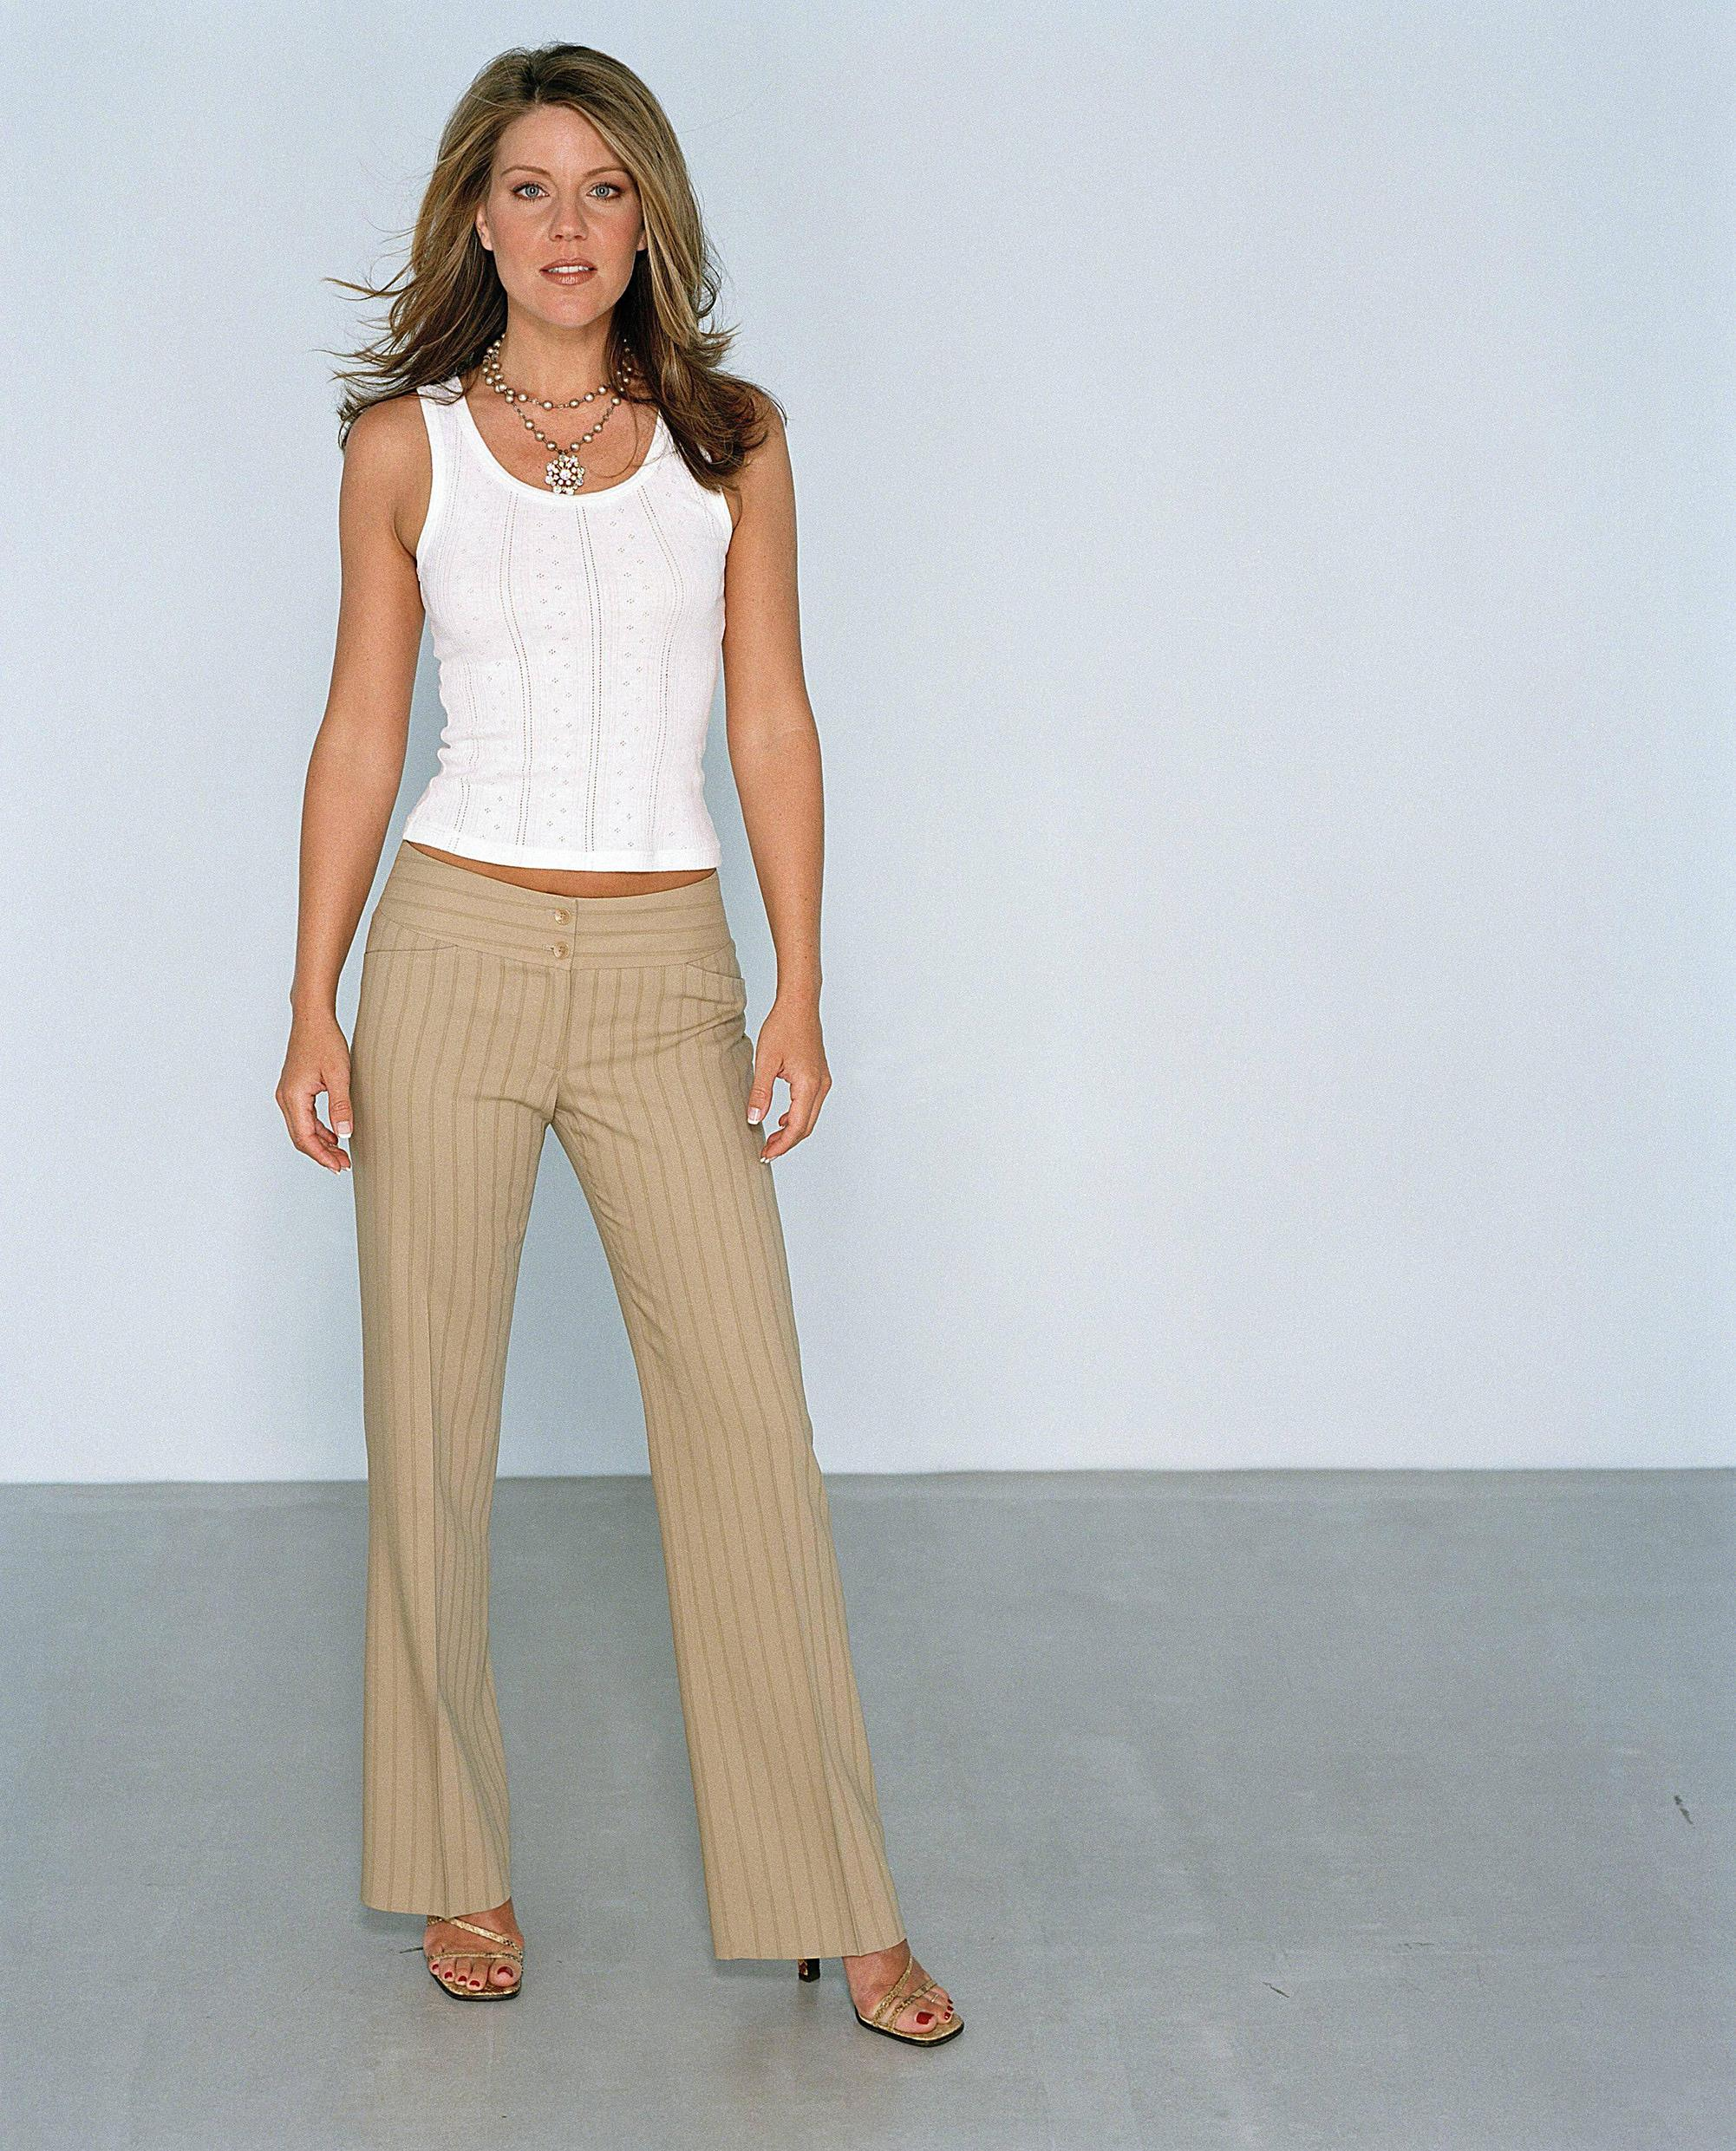 andrea parker s rating 9 40 10